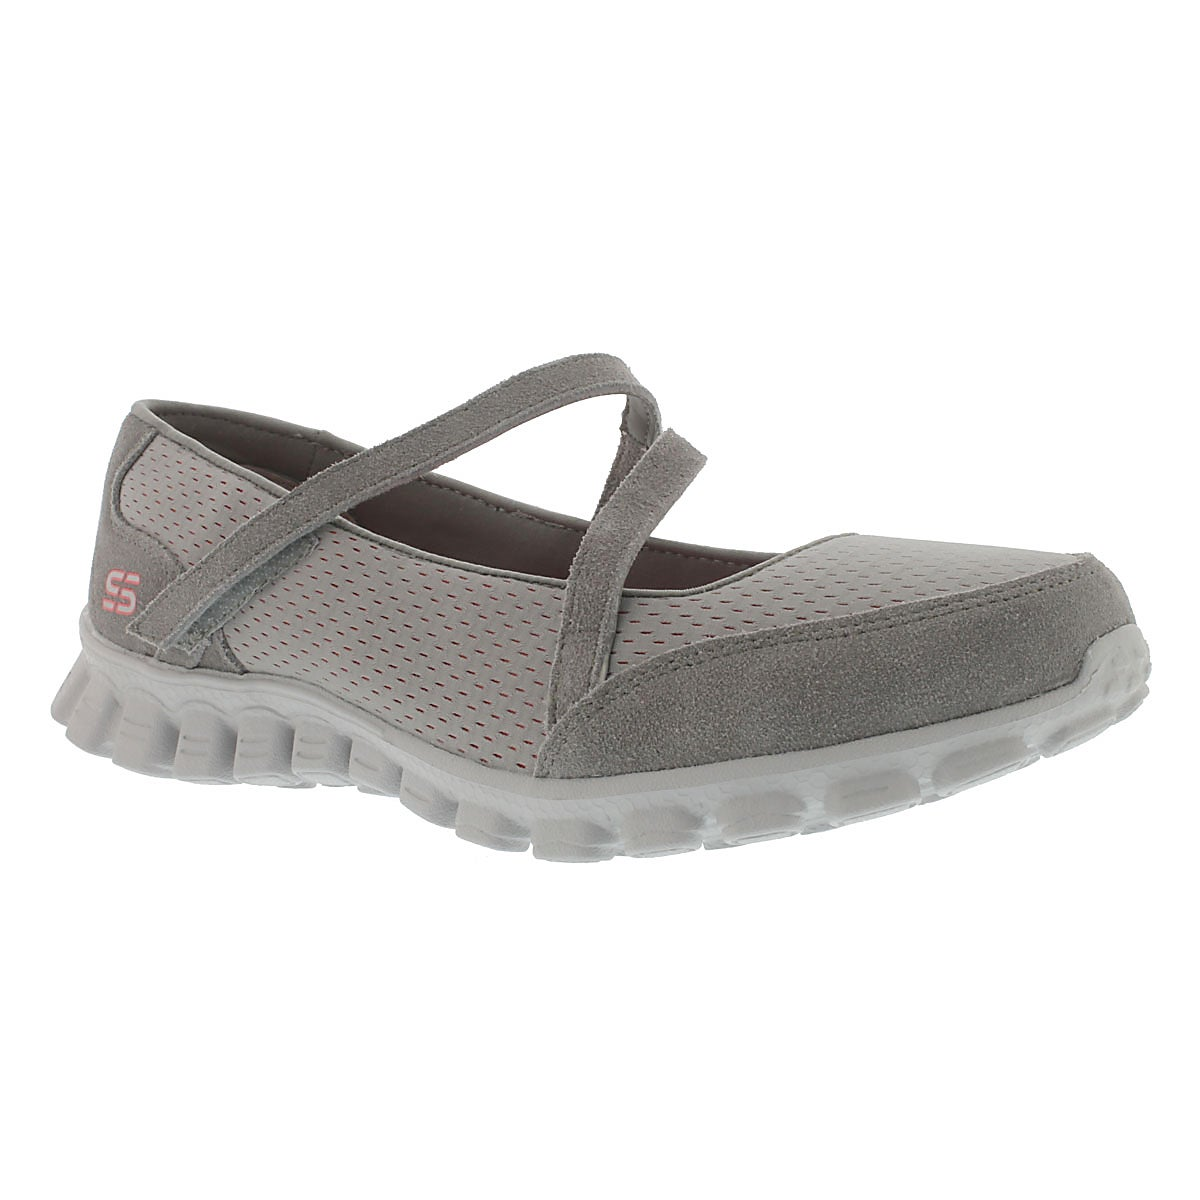 Lds A-Game grey mary jane sneaker